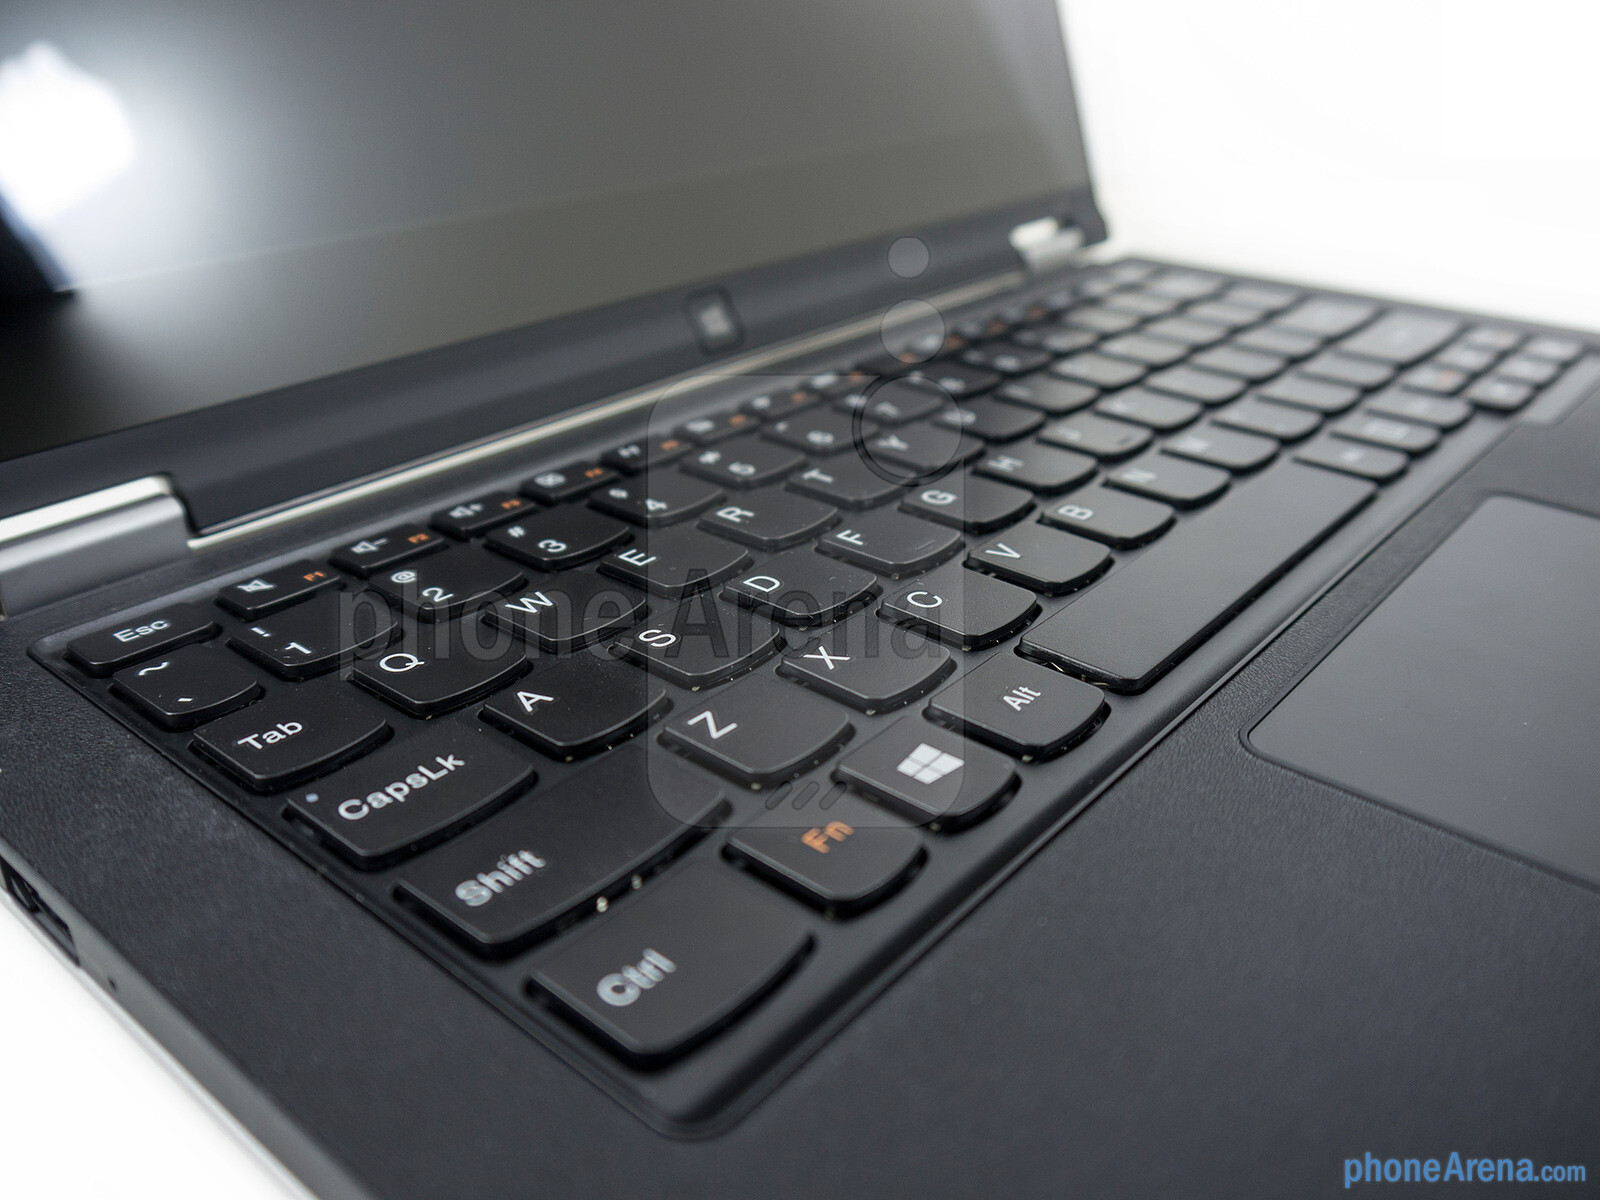 Keyboard of the lenovo ideapad yoga 11 lenovo ideapad yoga 11 review